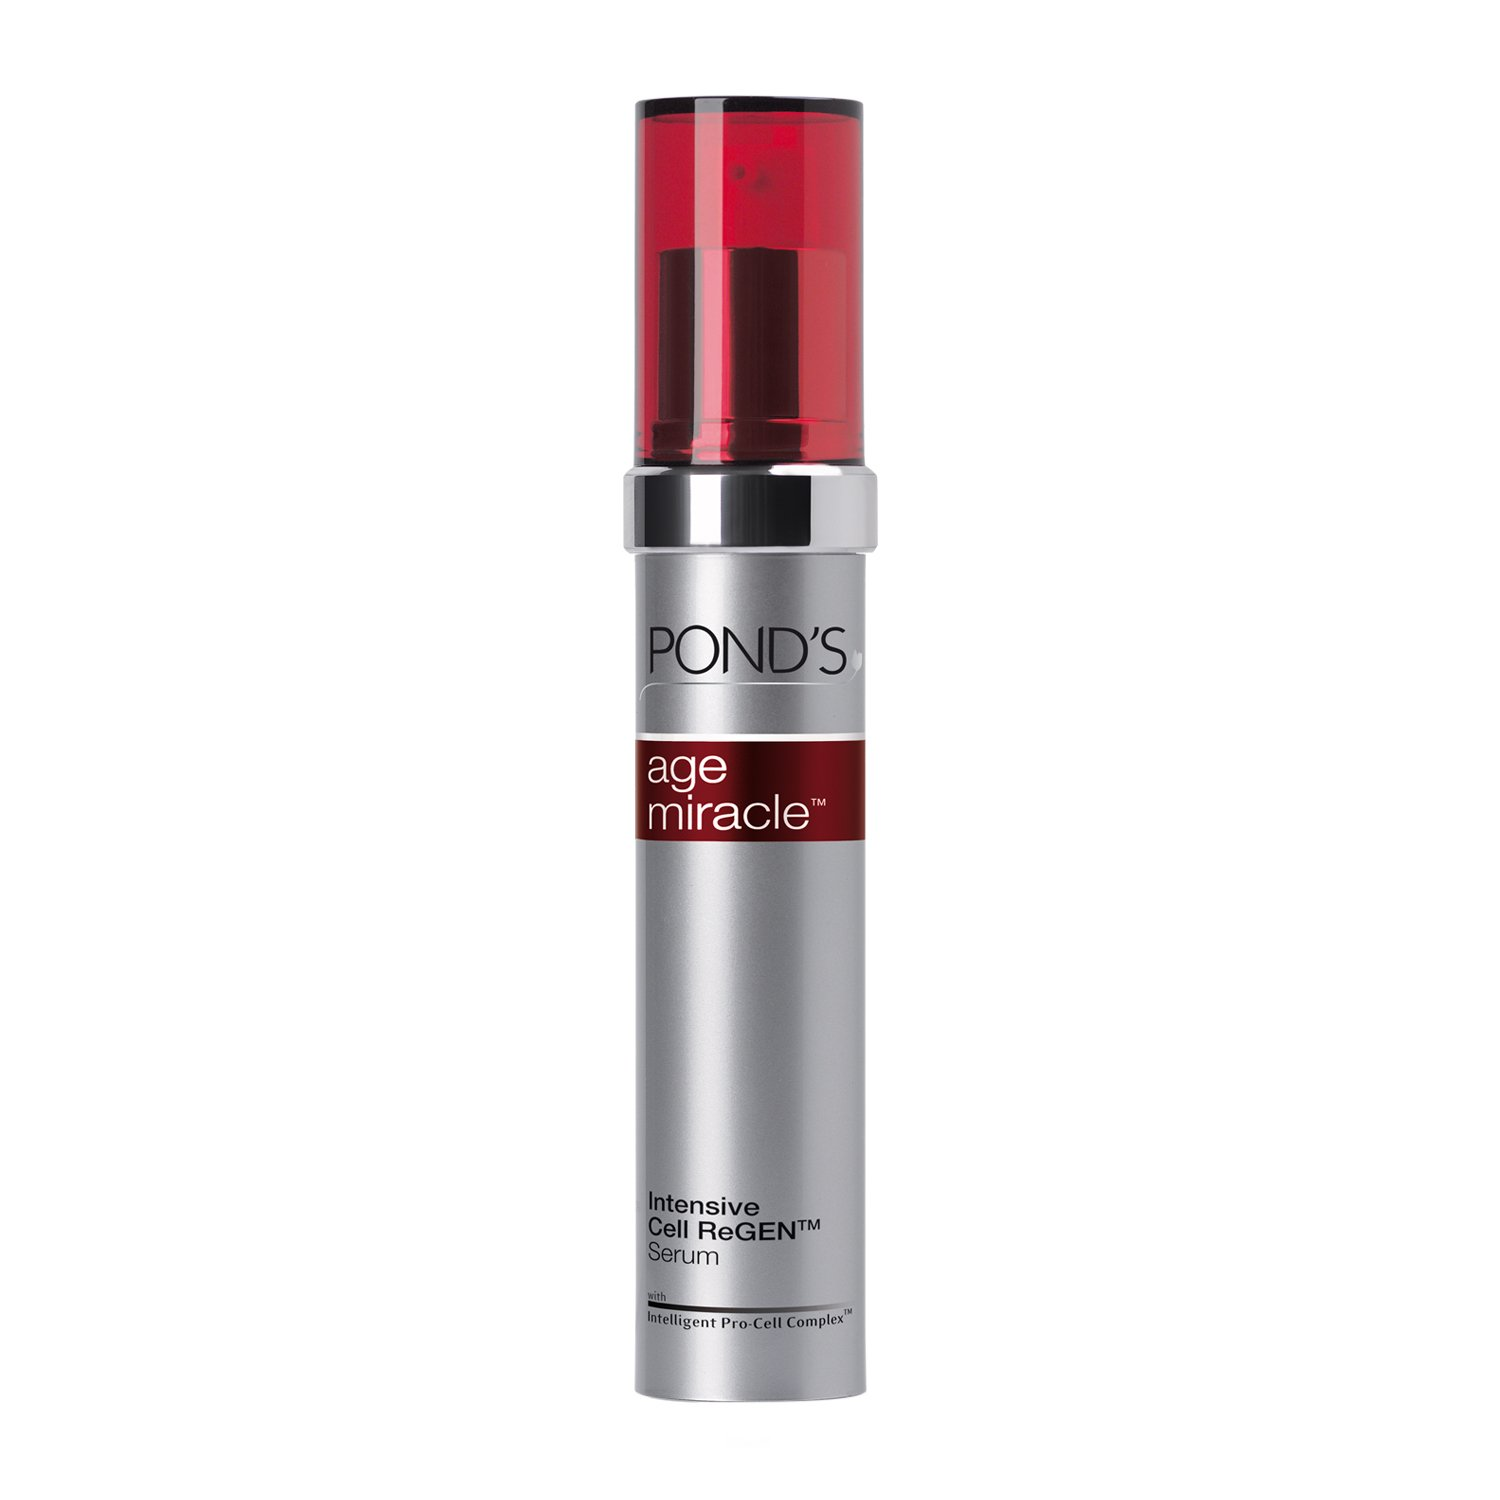 Ponds-Age-Miracle-Intensive-Cell-ReGen-Serum